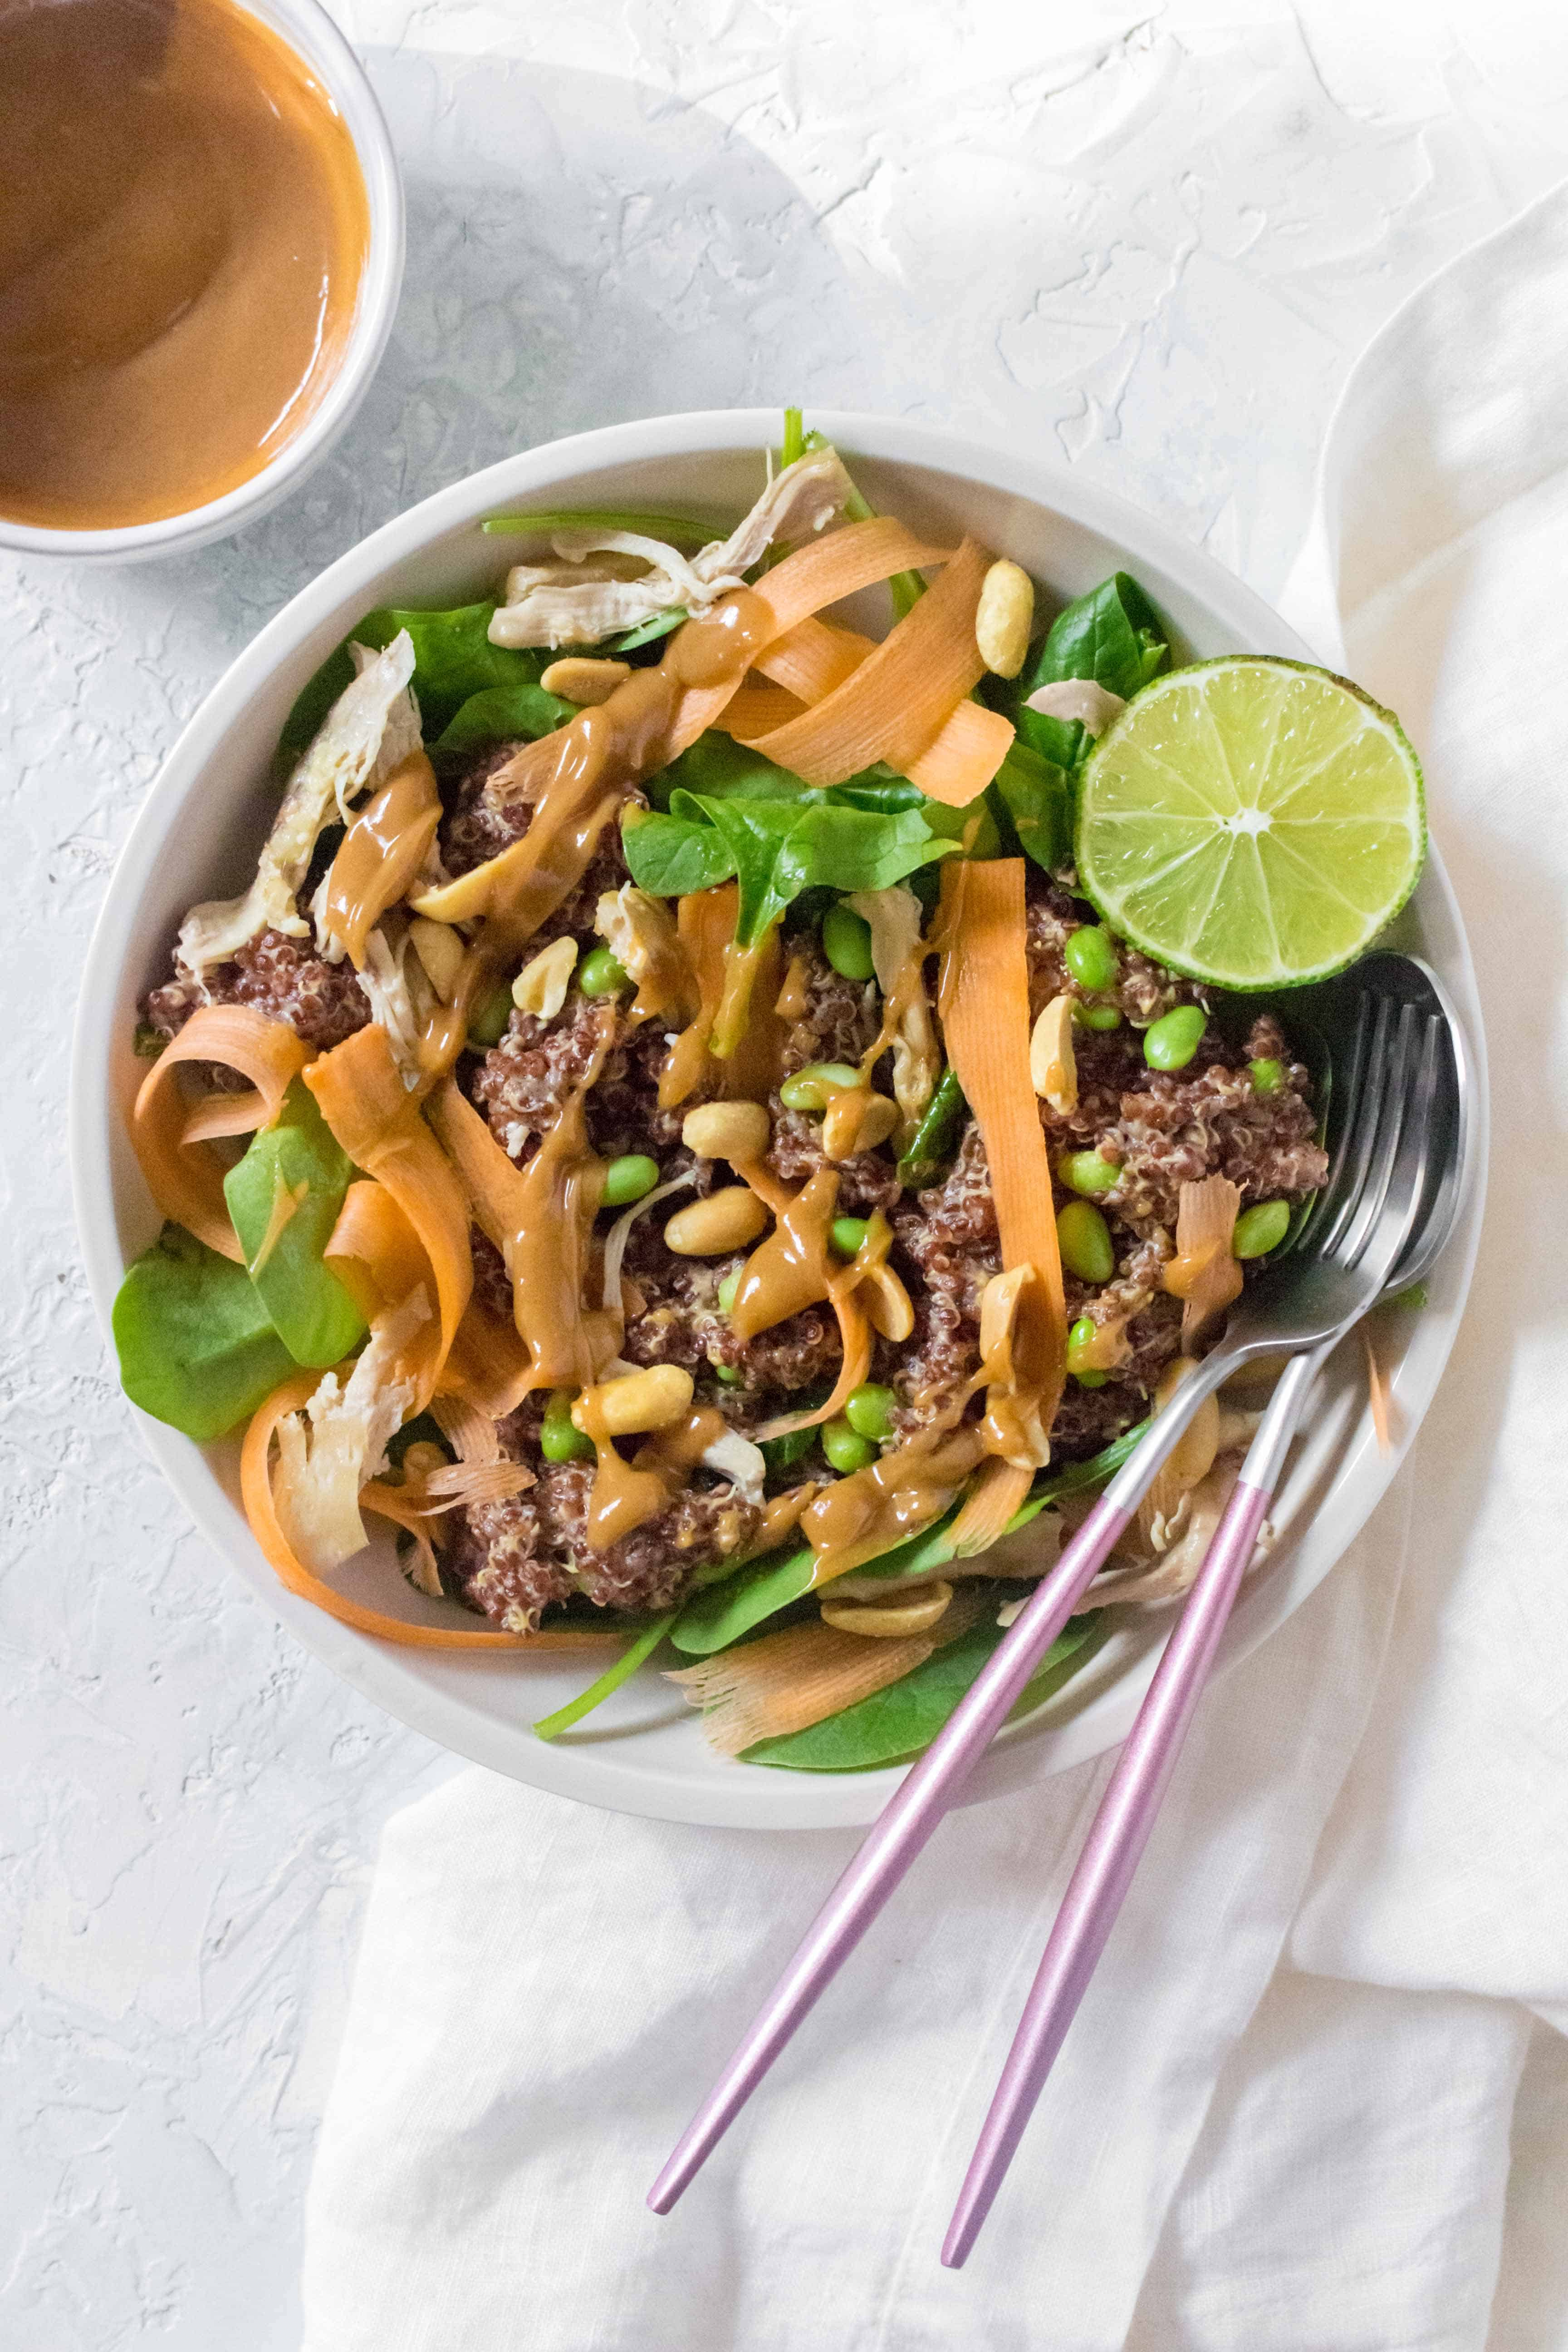 This healthy vibrant Peanut Quinoa Salad drizzled with a creamy peanut sauce is going to be perfect for your next meal prep, potluck, or picnics! Delicious chilled or served warm.